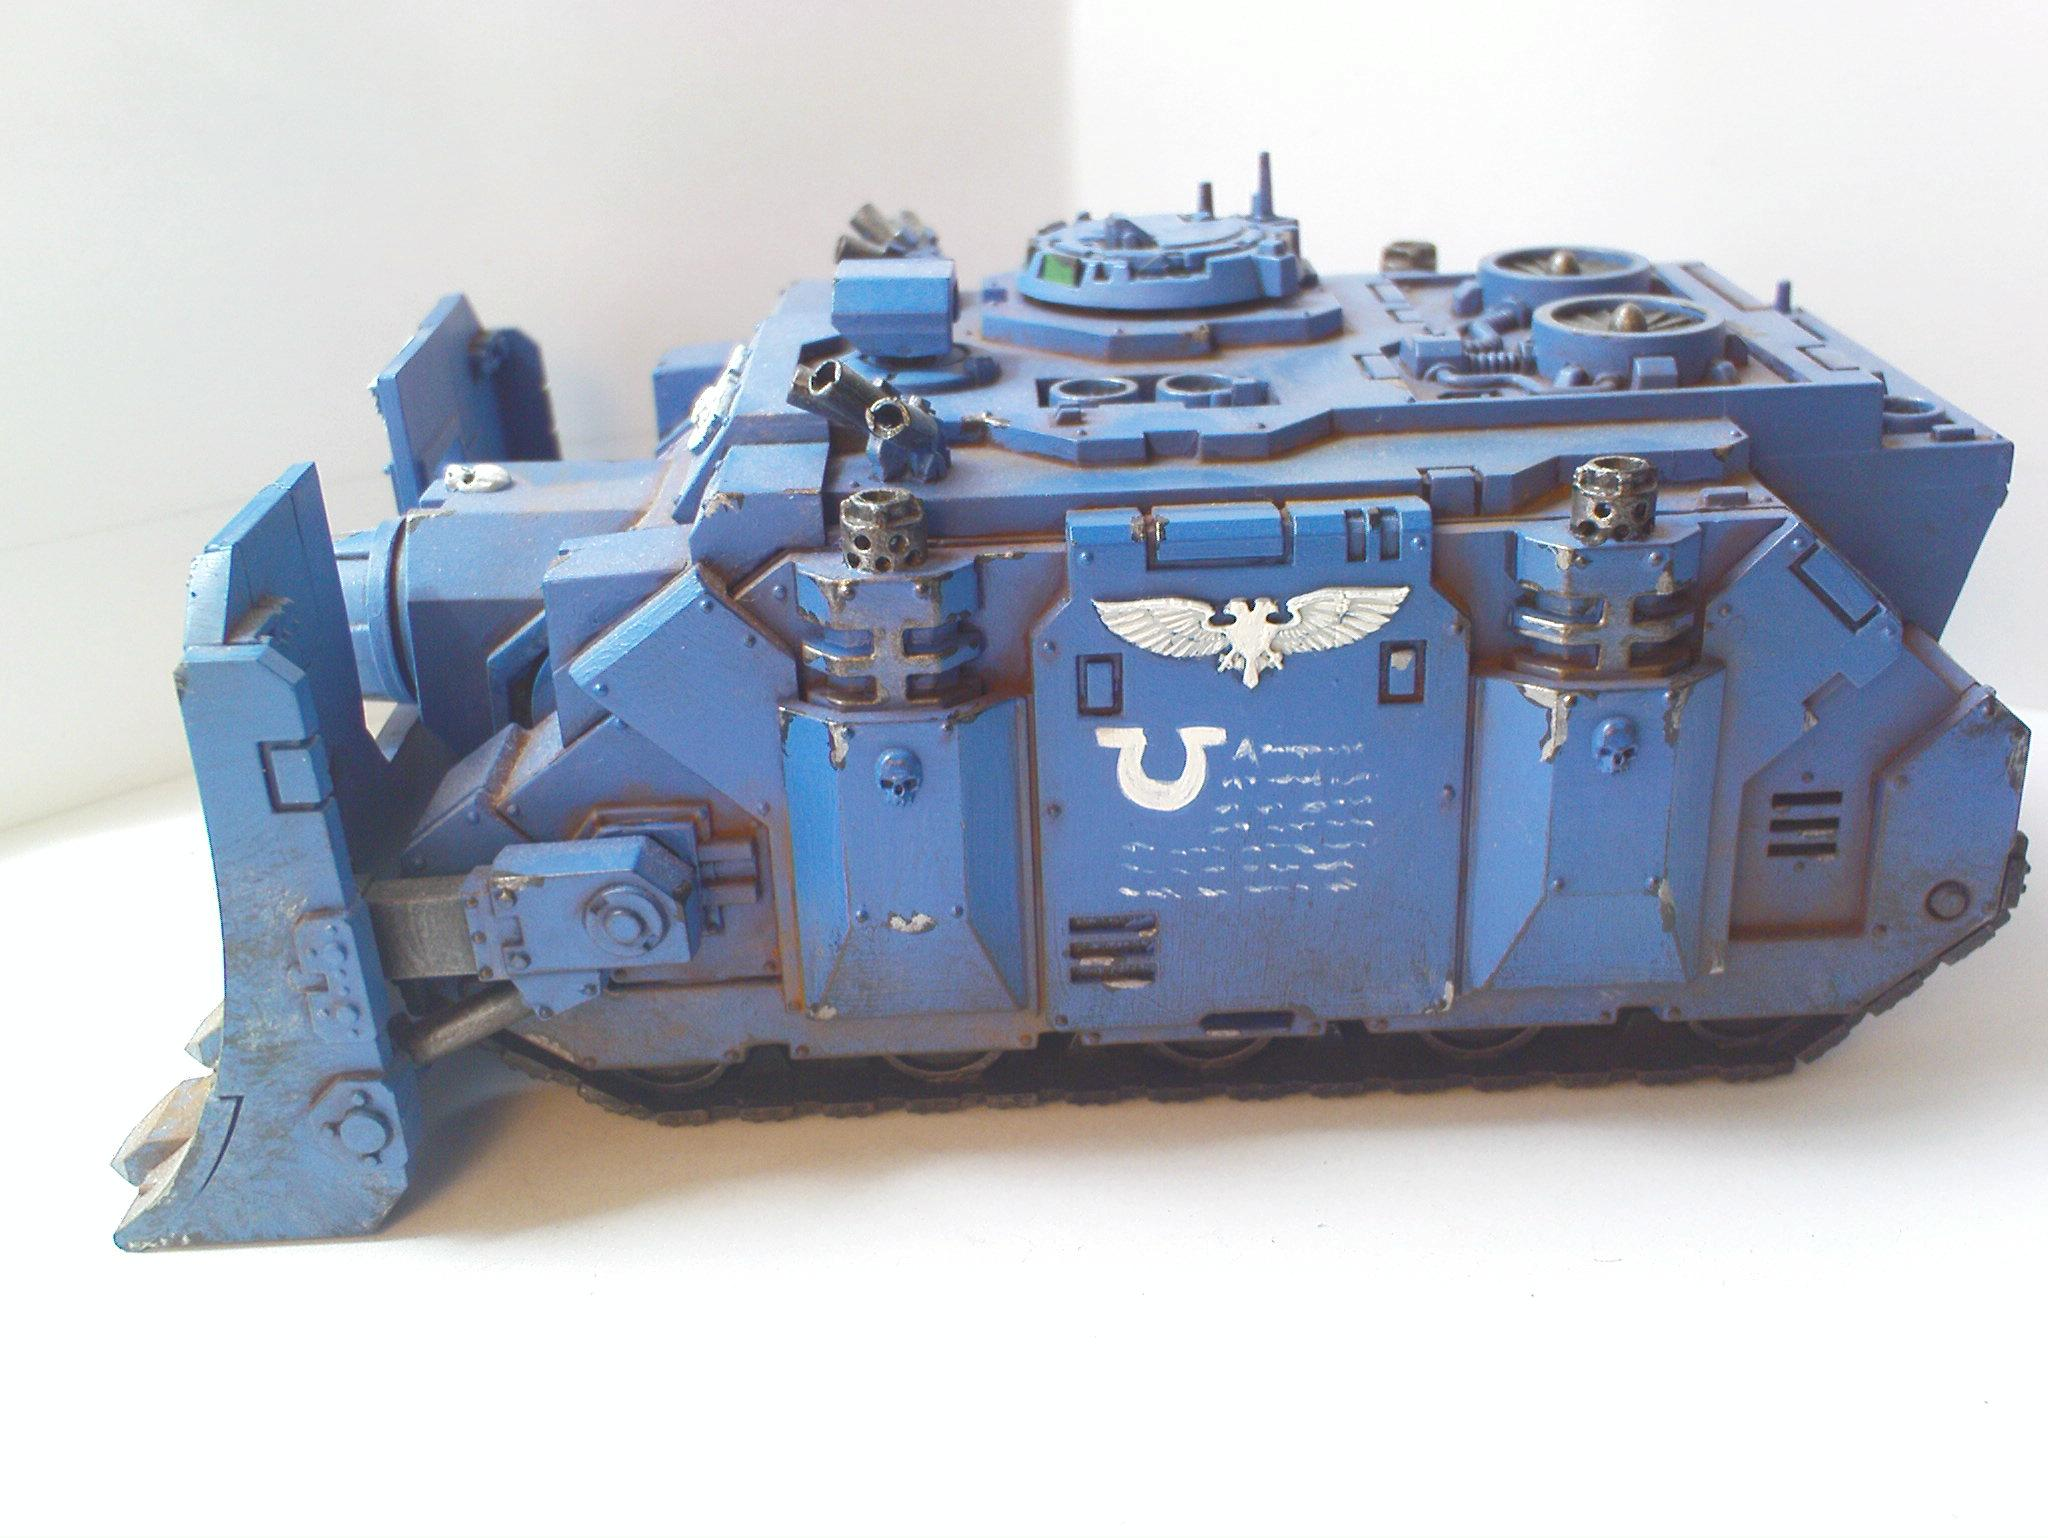 Heavy Support, Space Amrine, Ultra Marines, Vindicator, Warhammer 40,000